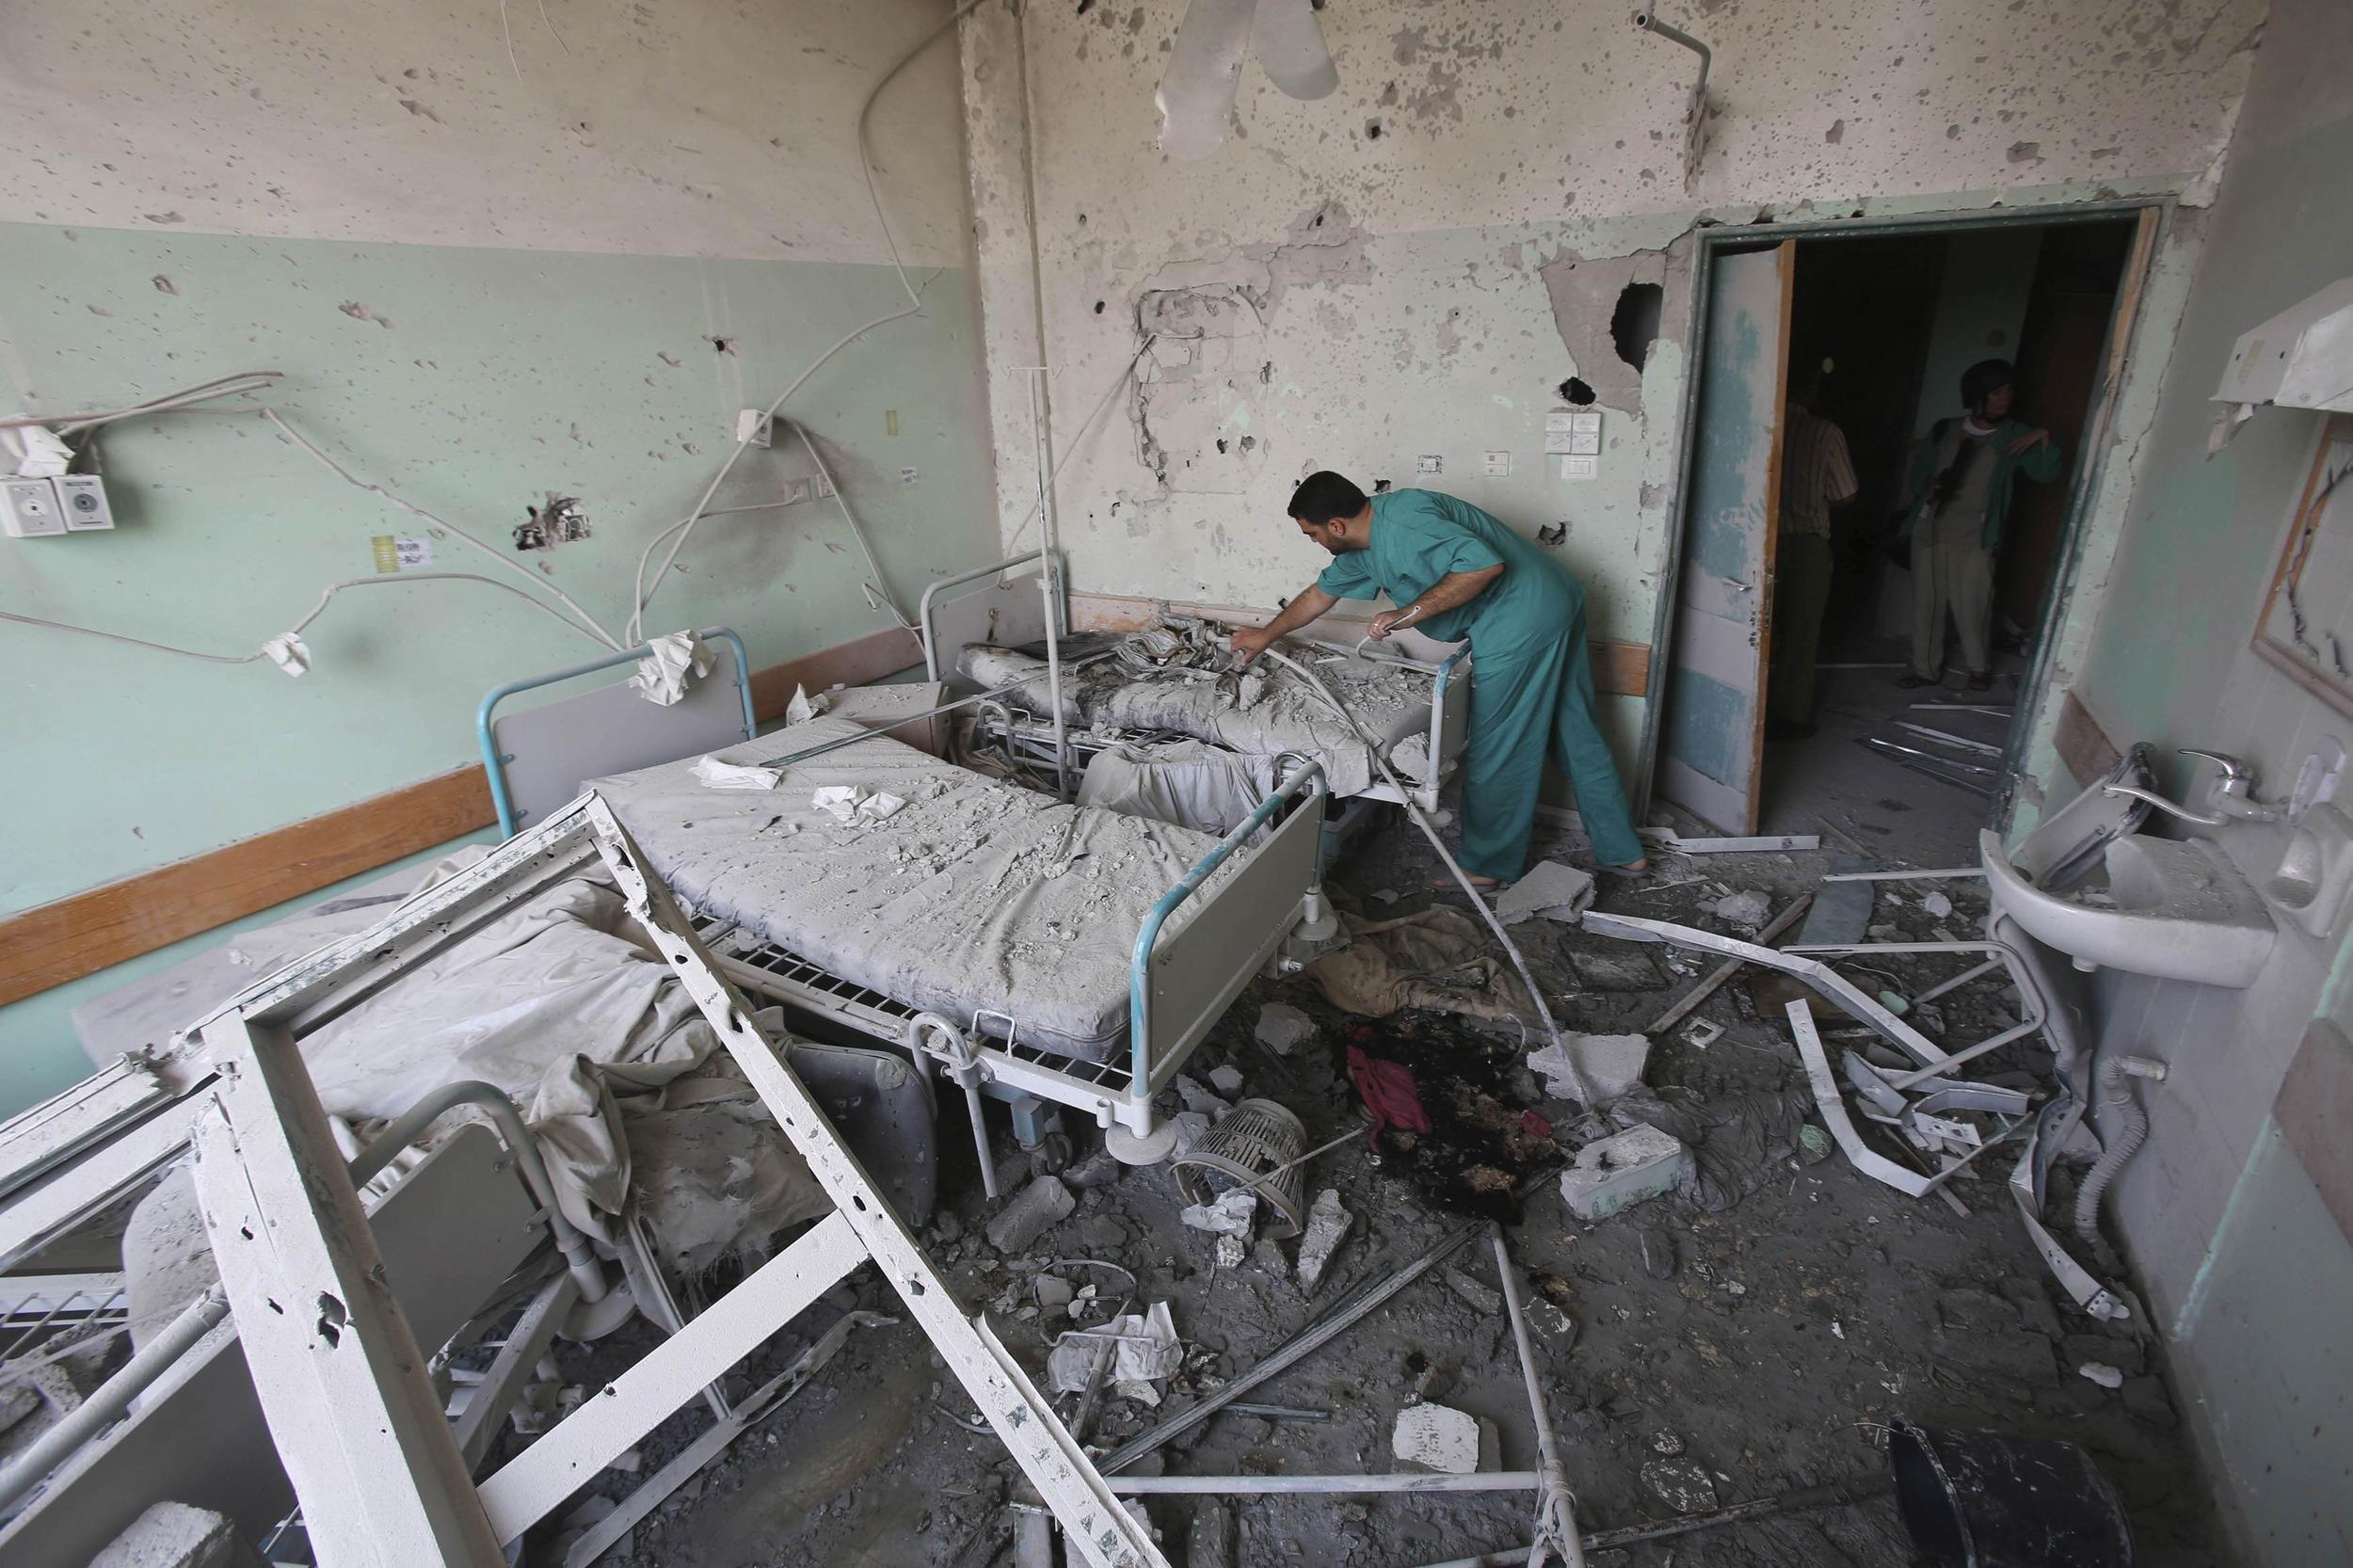 Image: Palestinian medic inspects a damaged room at Al-Aqsa hospital after it was shelled Monday